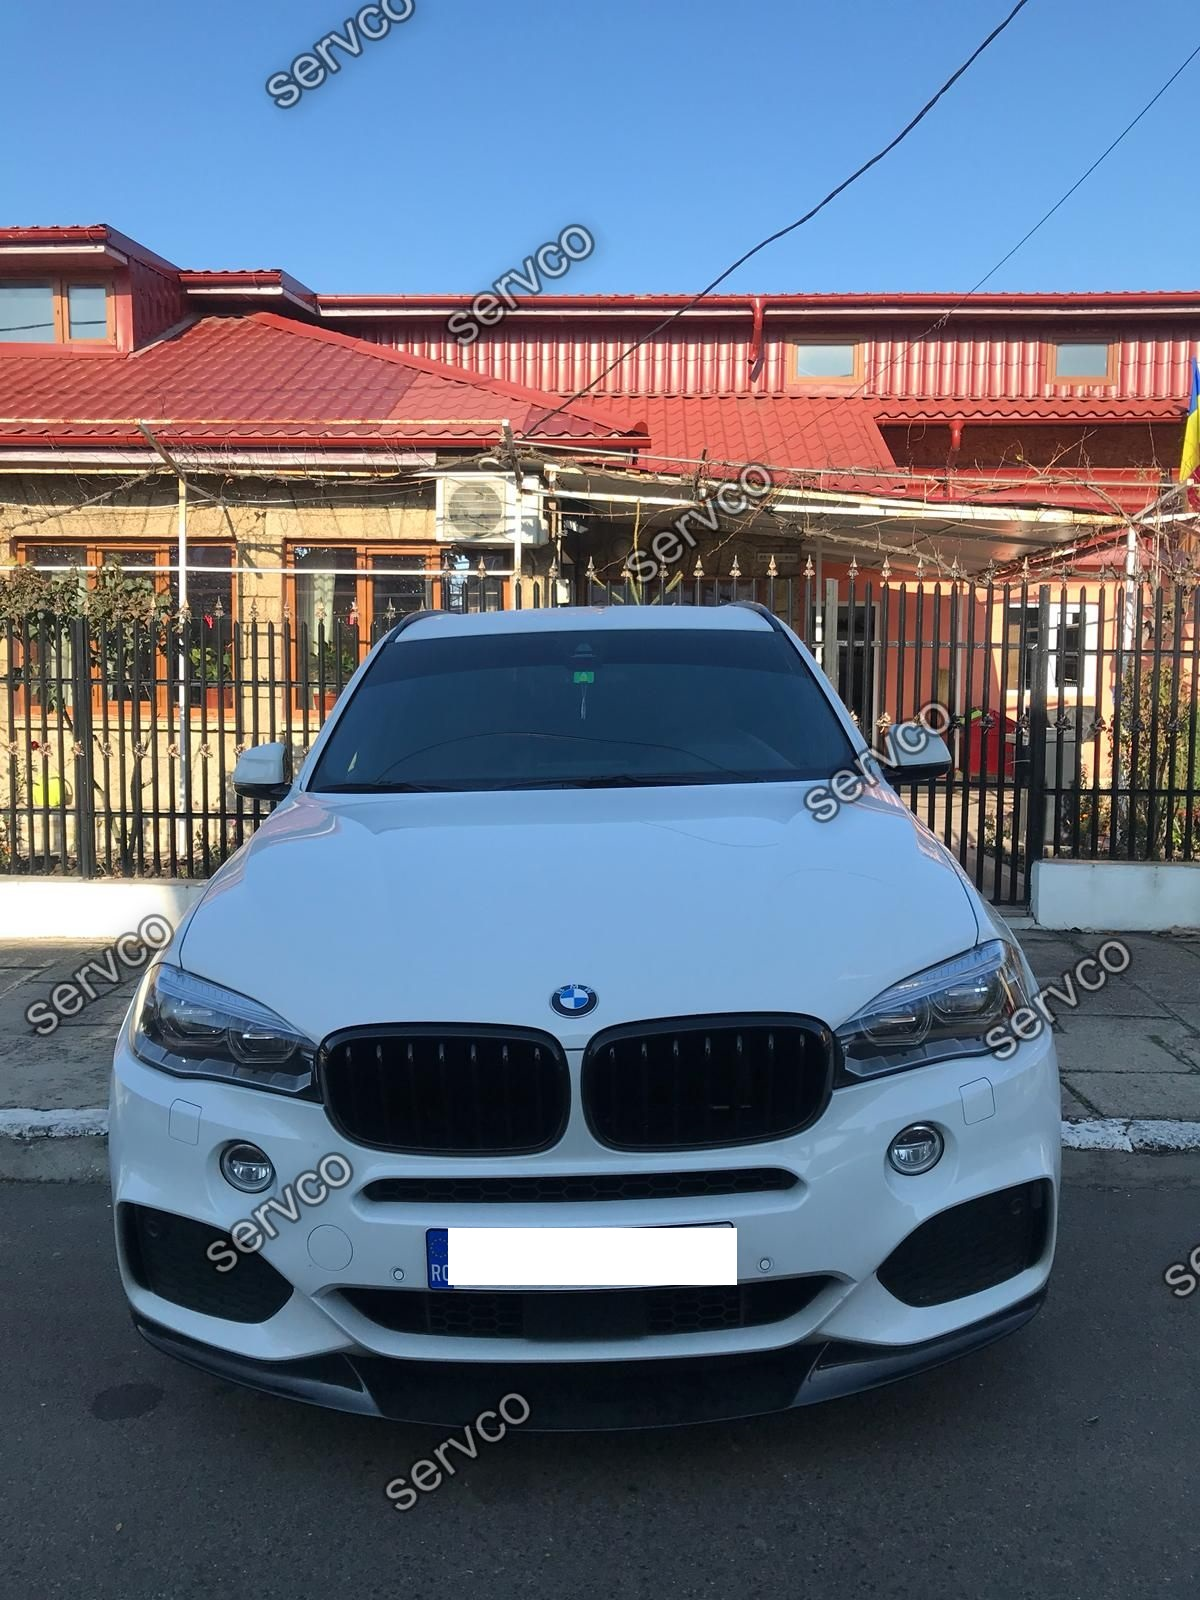 Body Kit Bodykit Pachet Aerodynamic Aero Performance BMW X5 F15 M50D Mpack ver2